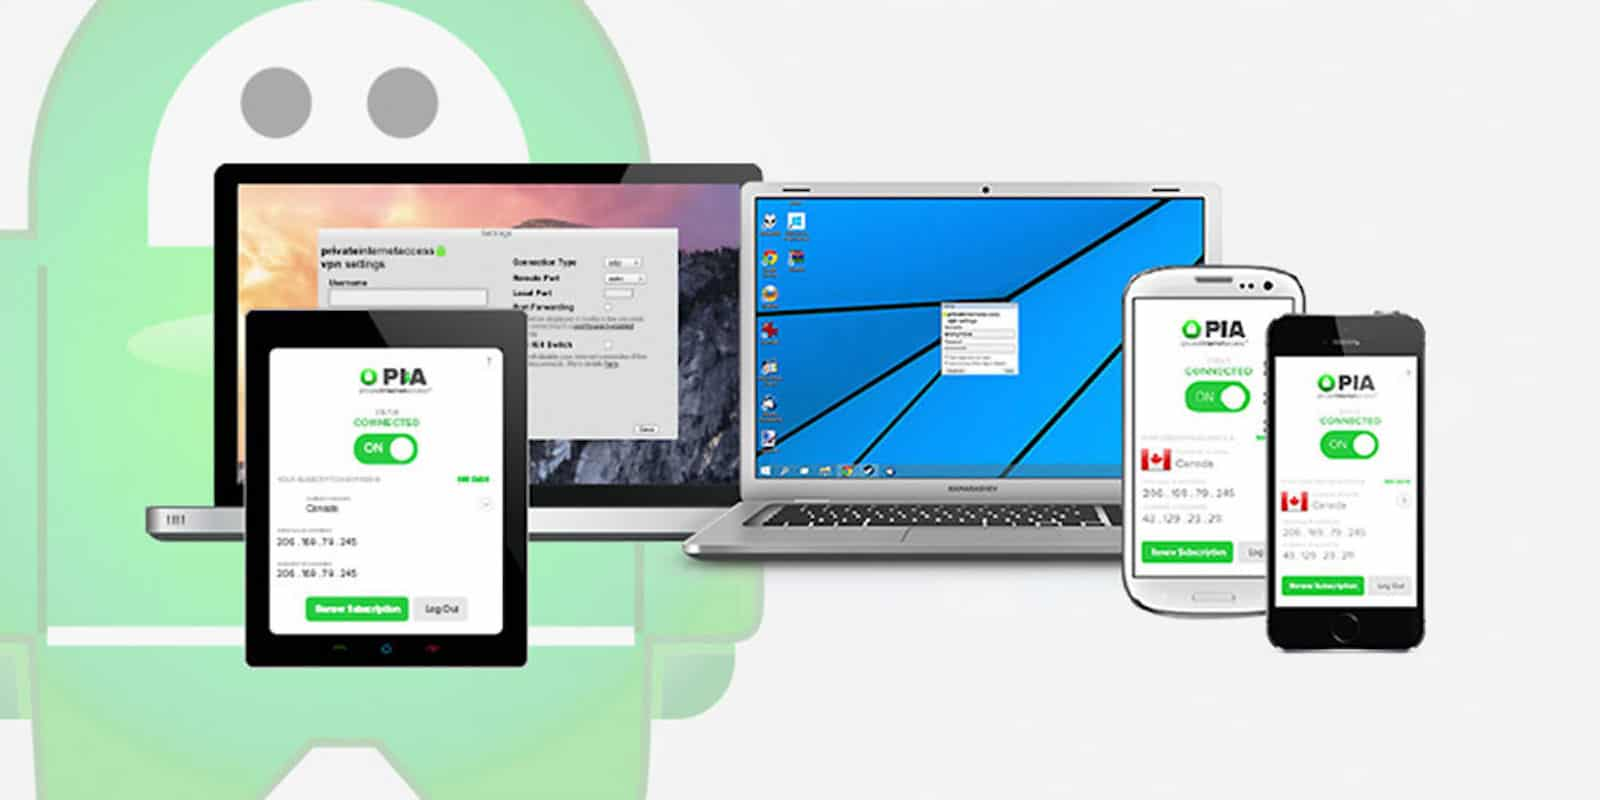 Guard your online life with fewer restrictions for a year with this great VPN deal.